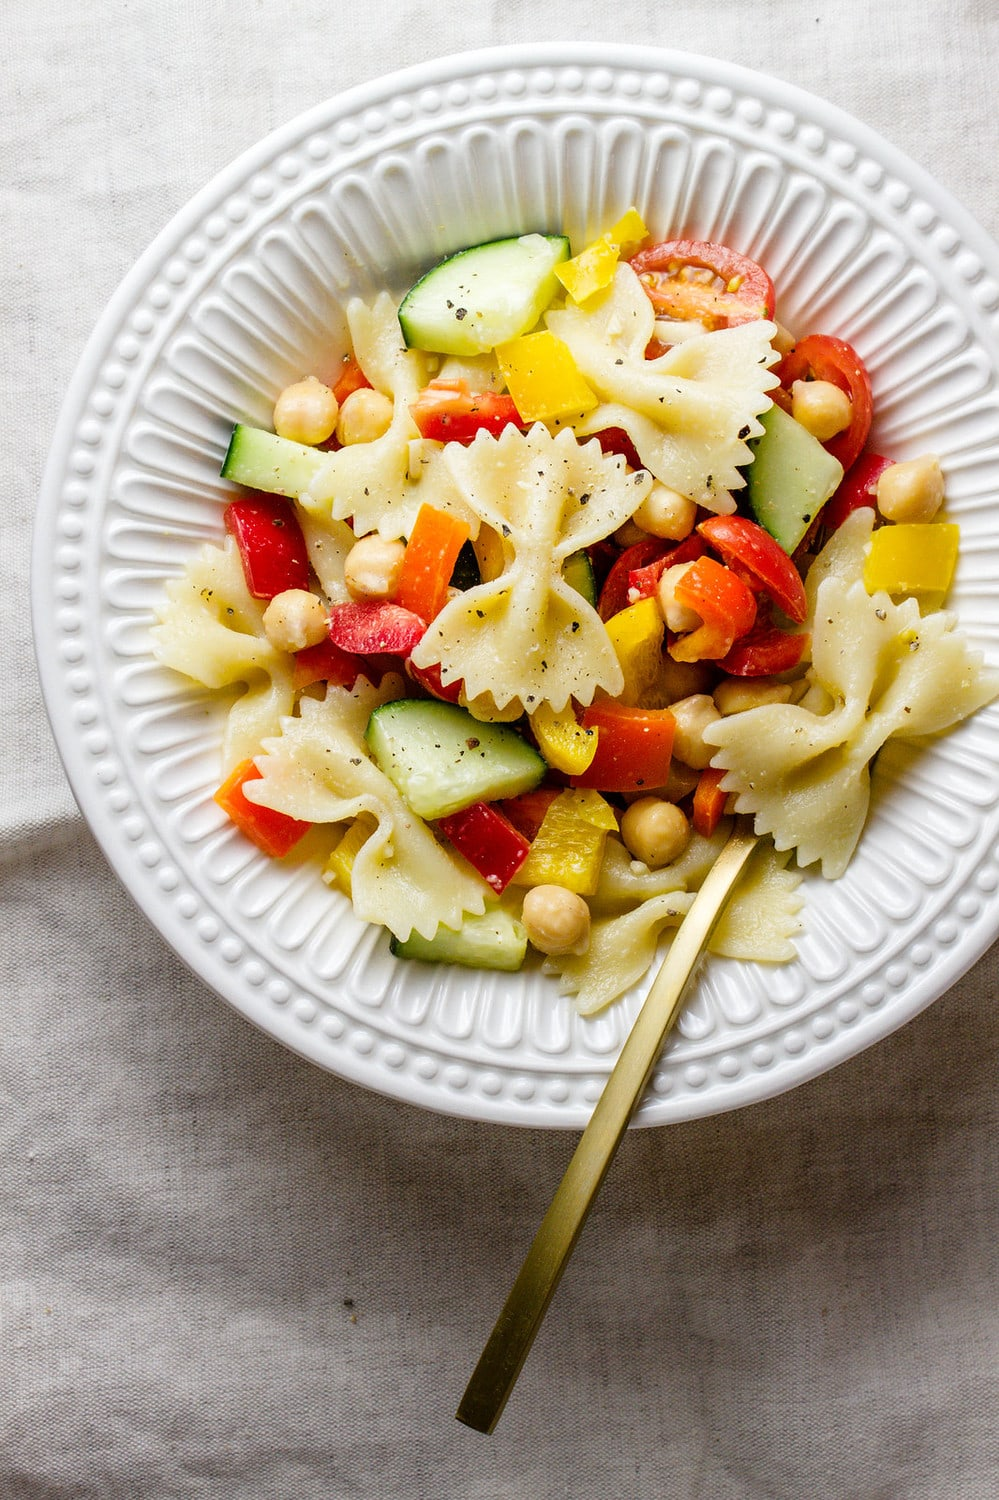 top down view of a serving of chickpea vegetable pasta salad in a white bowl with gold fork.